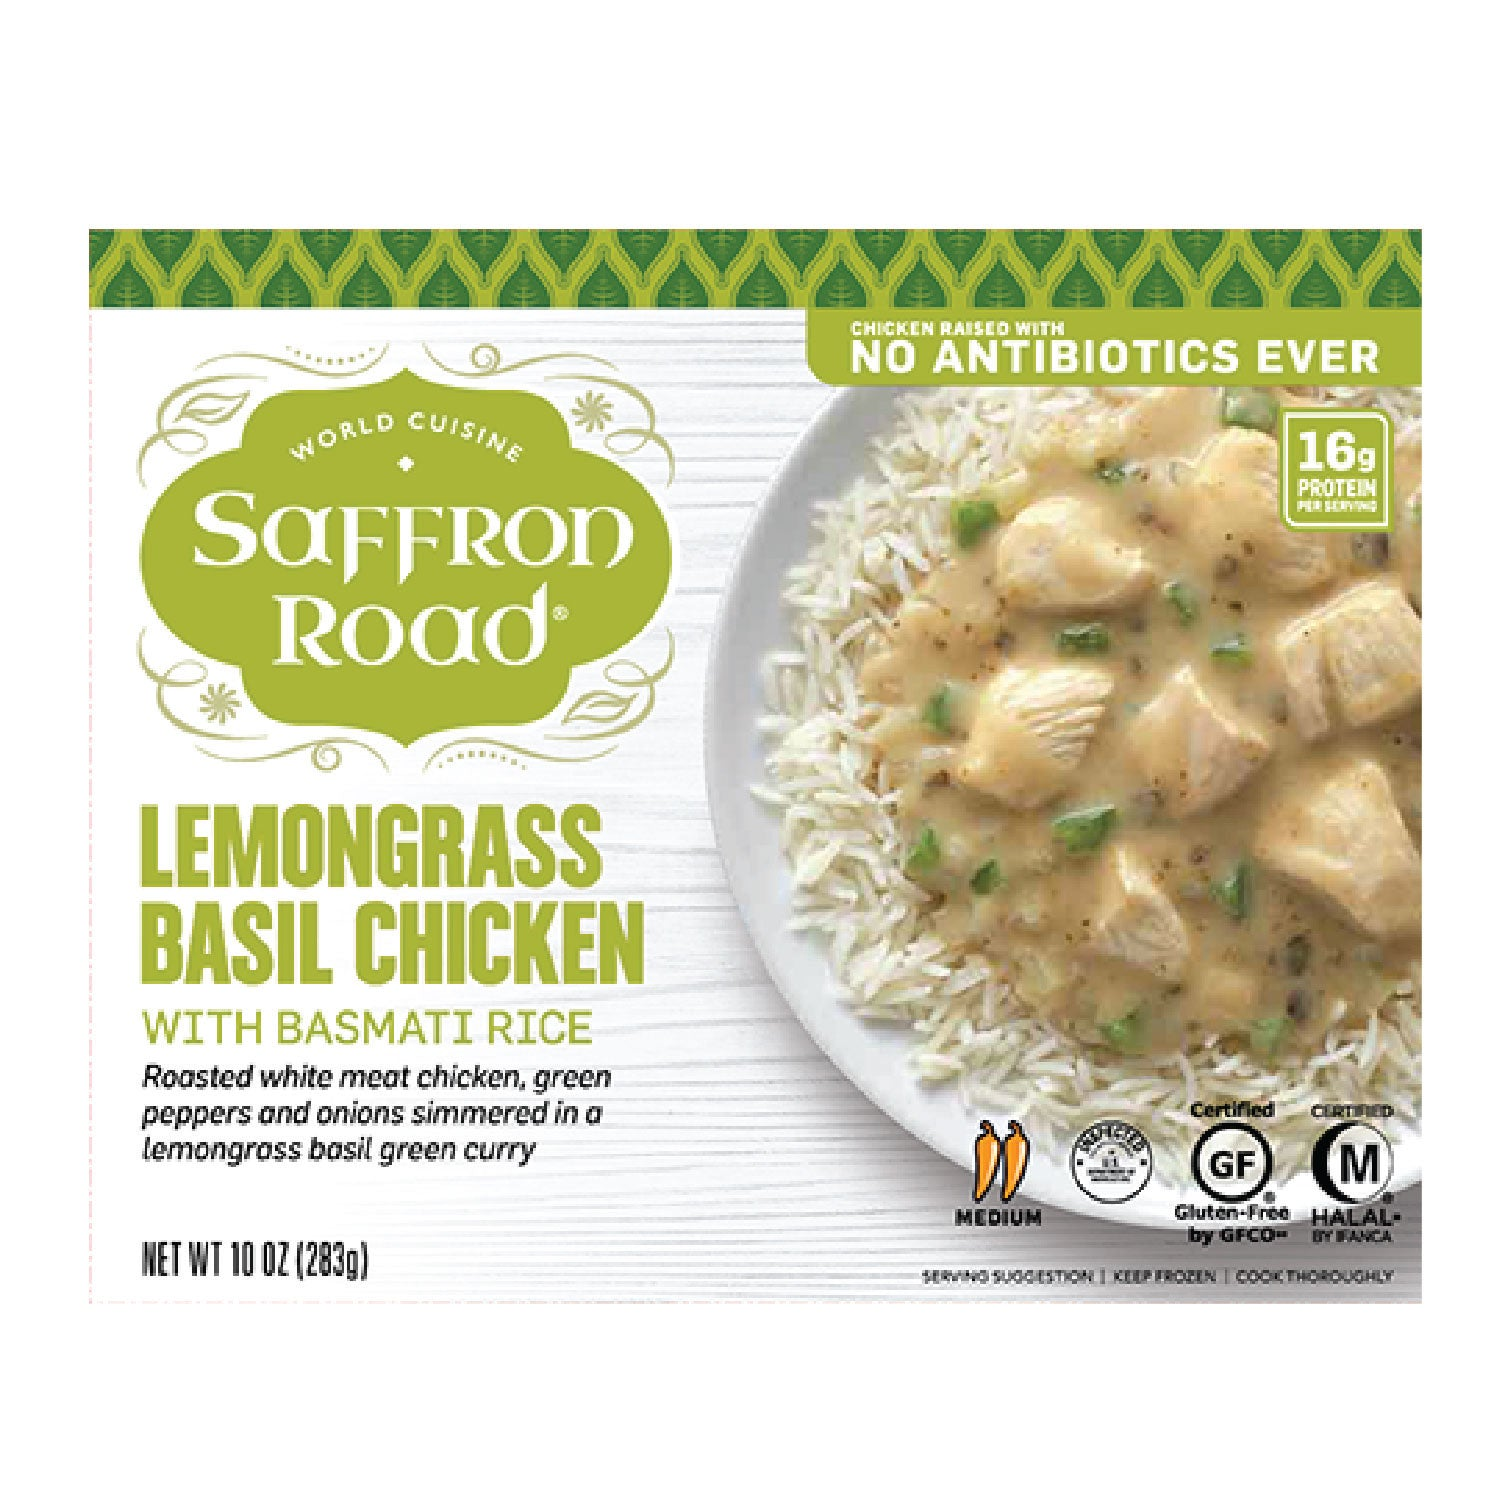 Saffron Road: Lemongrass Basil Chicken - 10 oz.